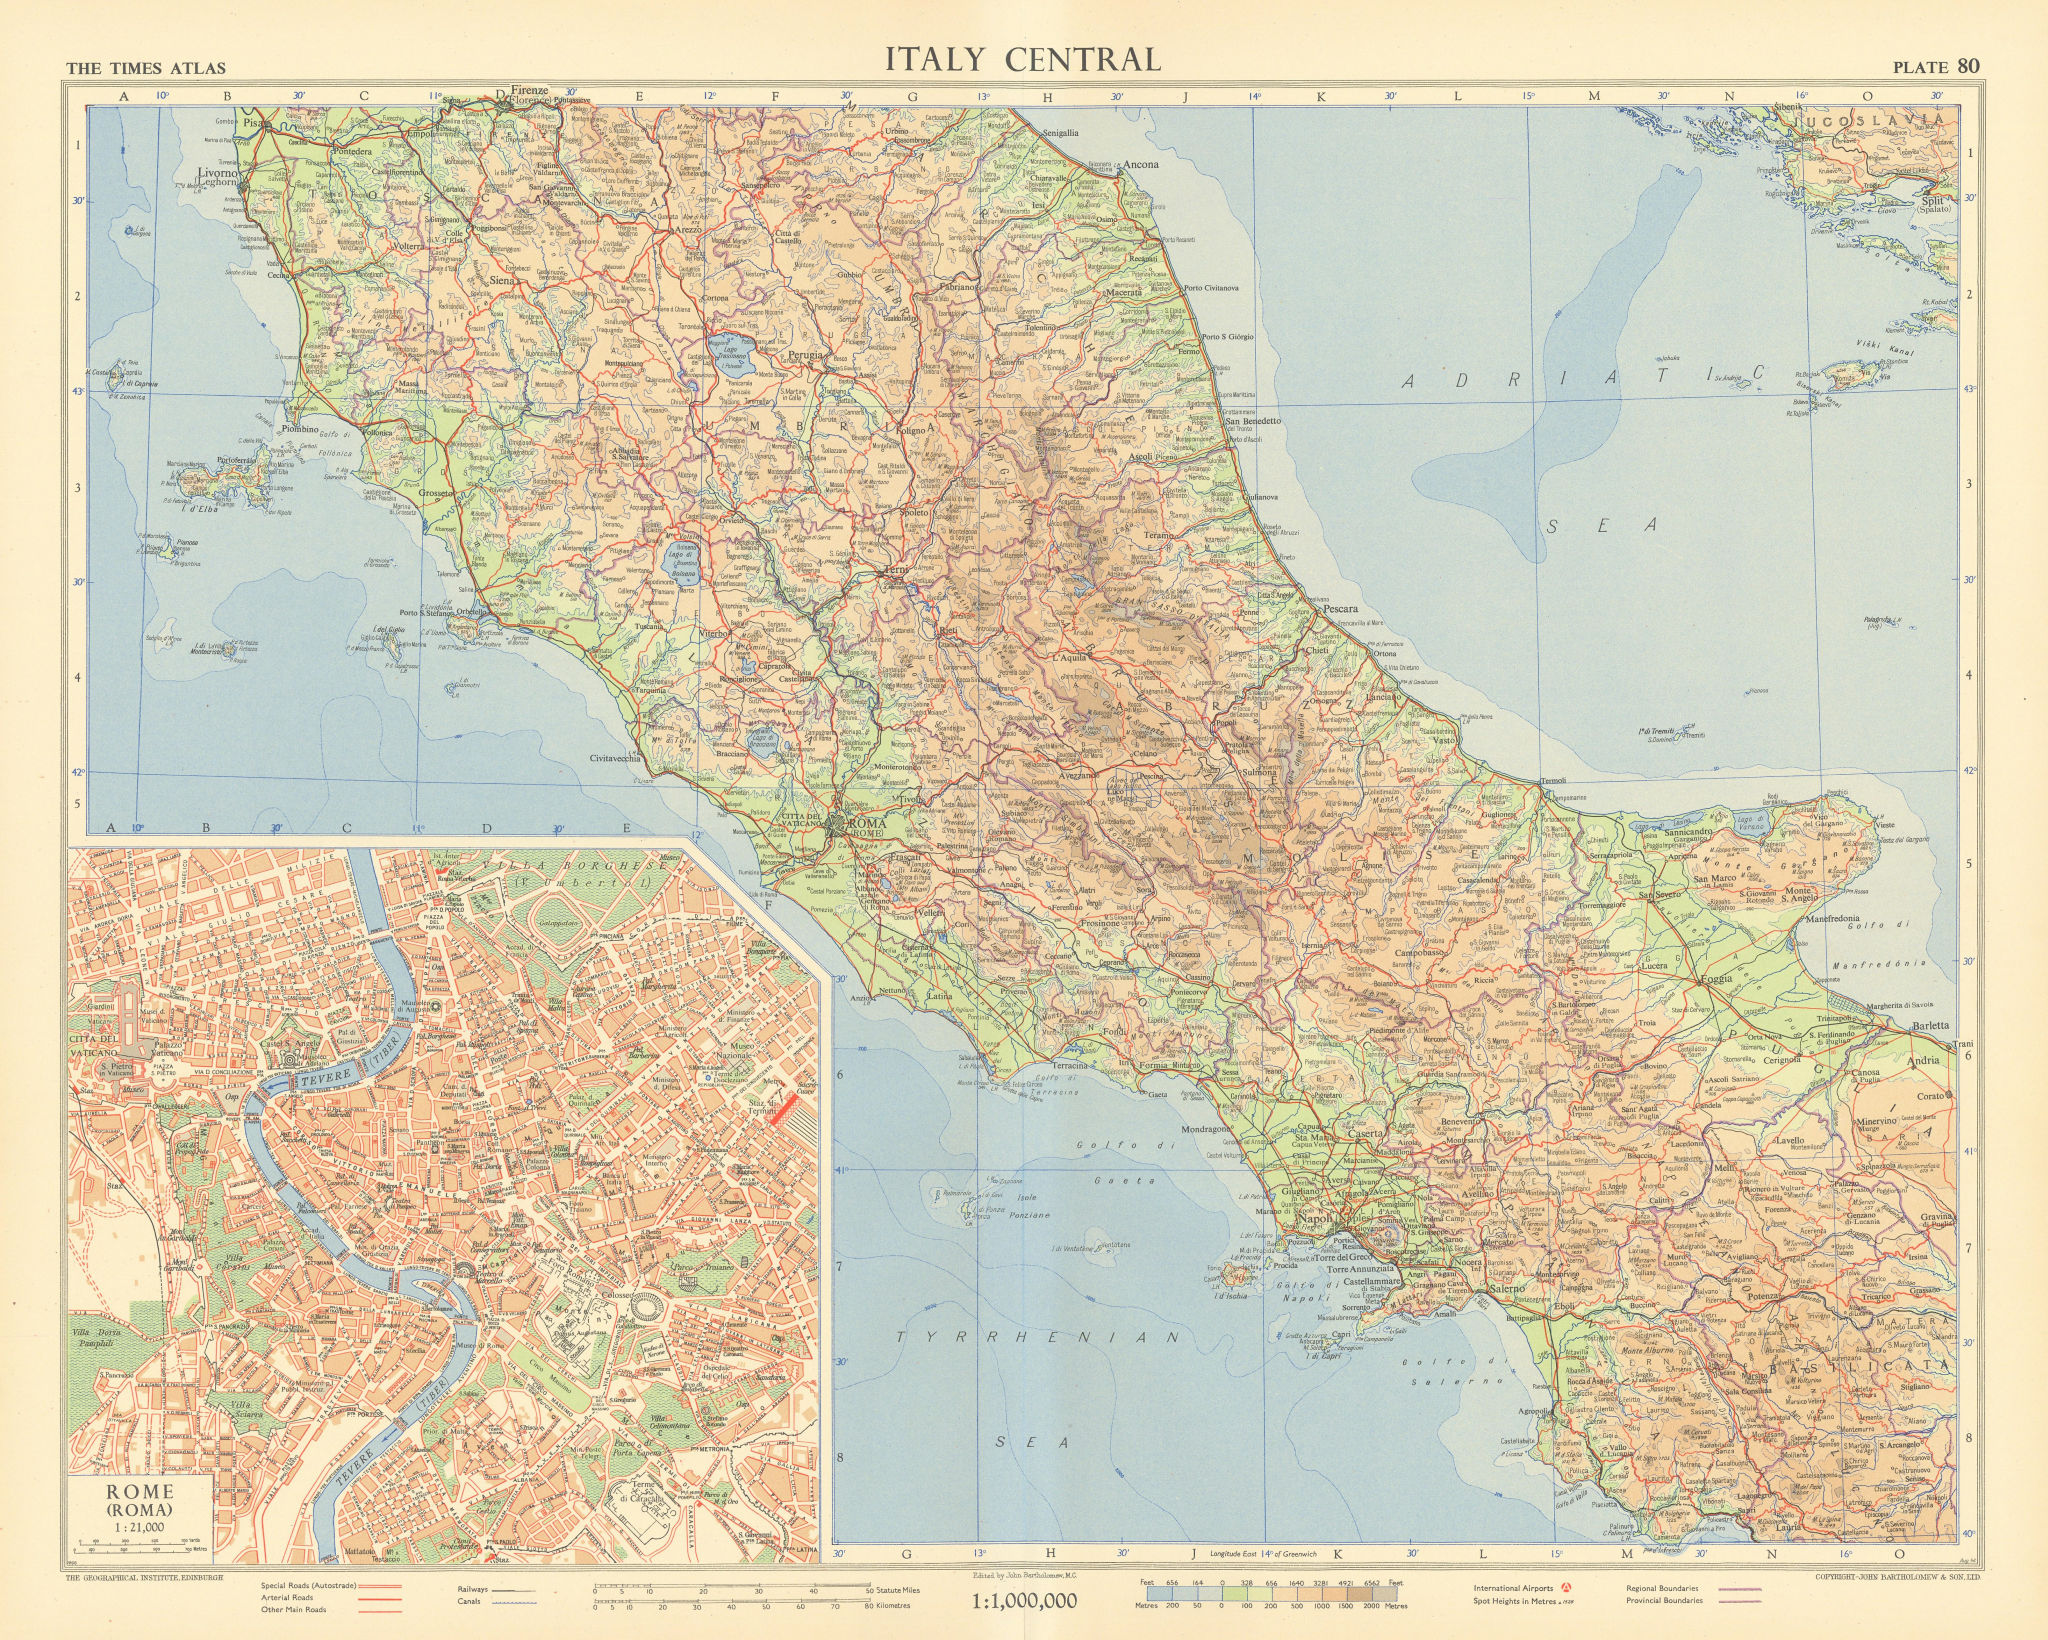 Italy central. Rome plan. Road network Autostrade. TIMES 1956 old vintage map